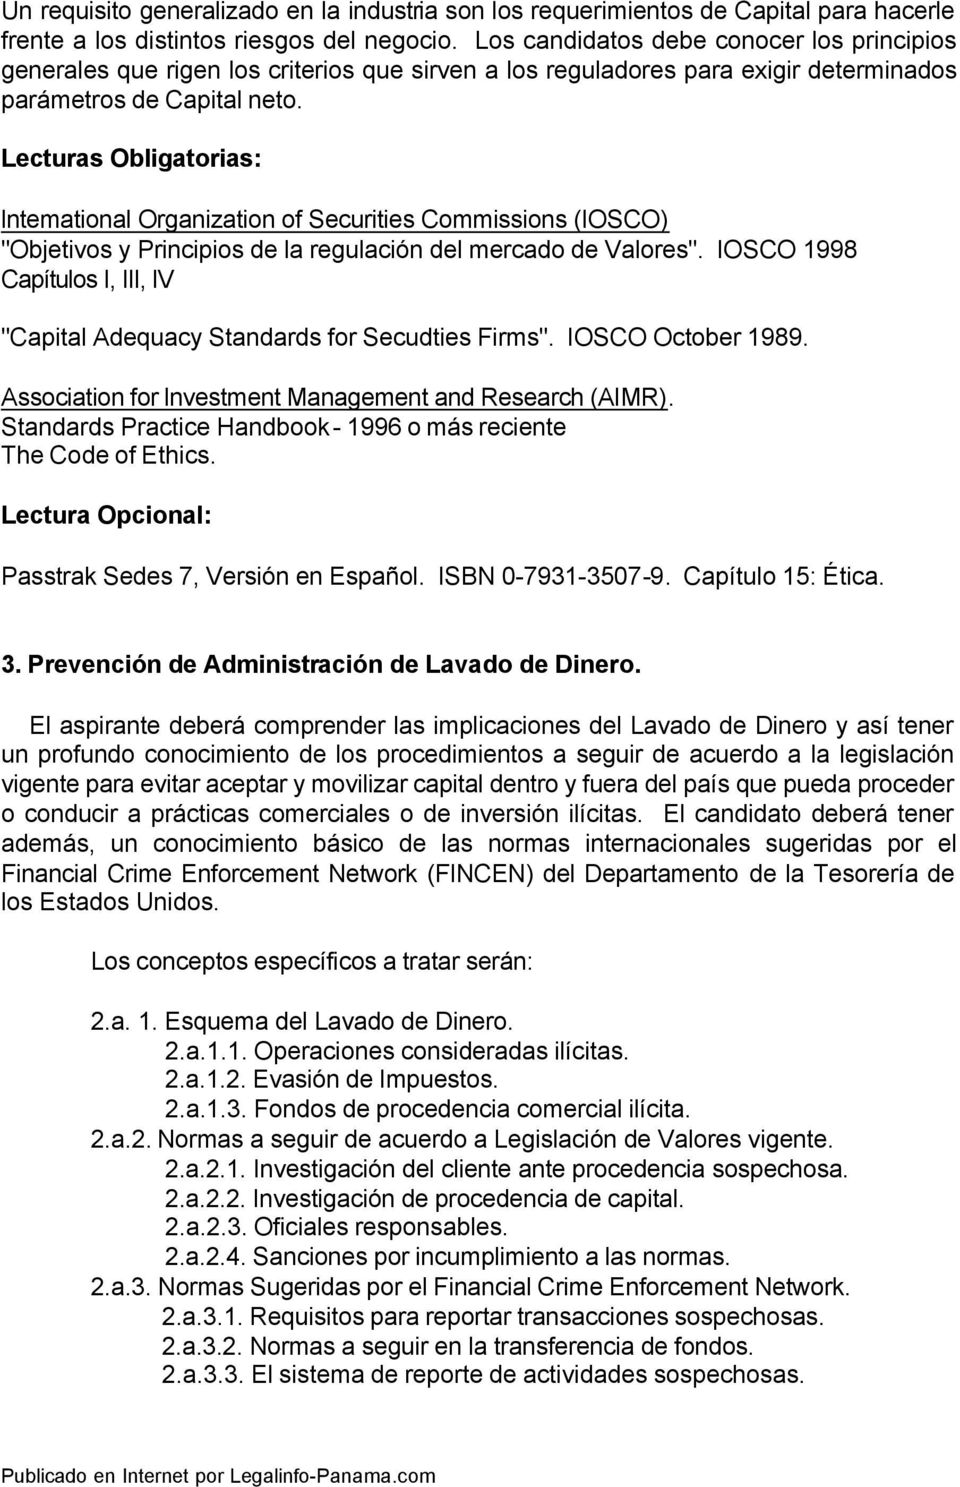 "Lecturas Obligatorias: lntemational Organization of Securities Commissions (IOSCO) ""Objetivos y Principios de la regulación del mercado de Valores""."